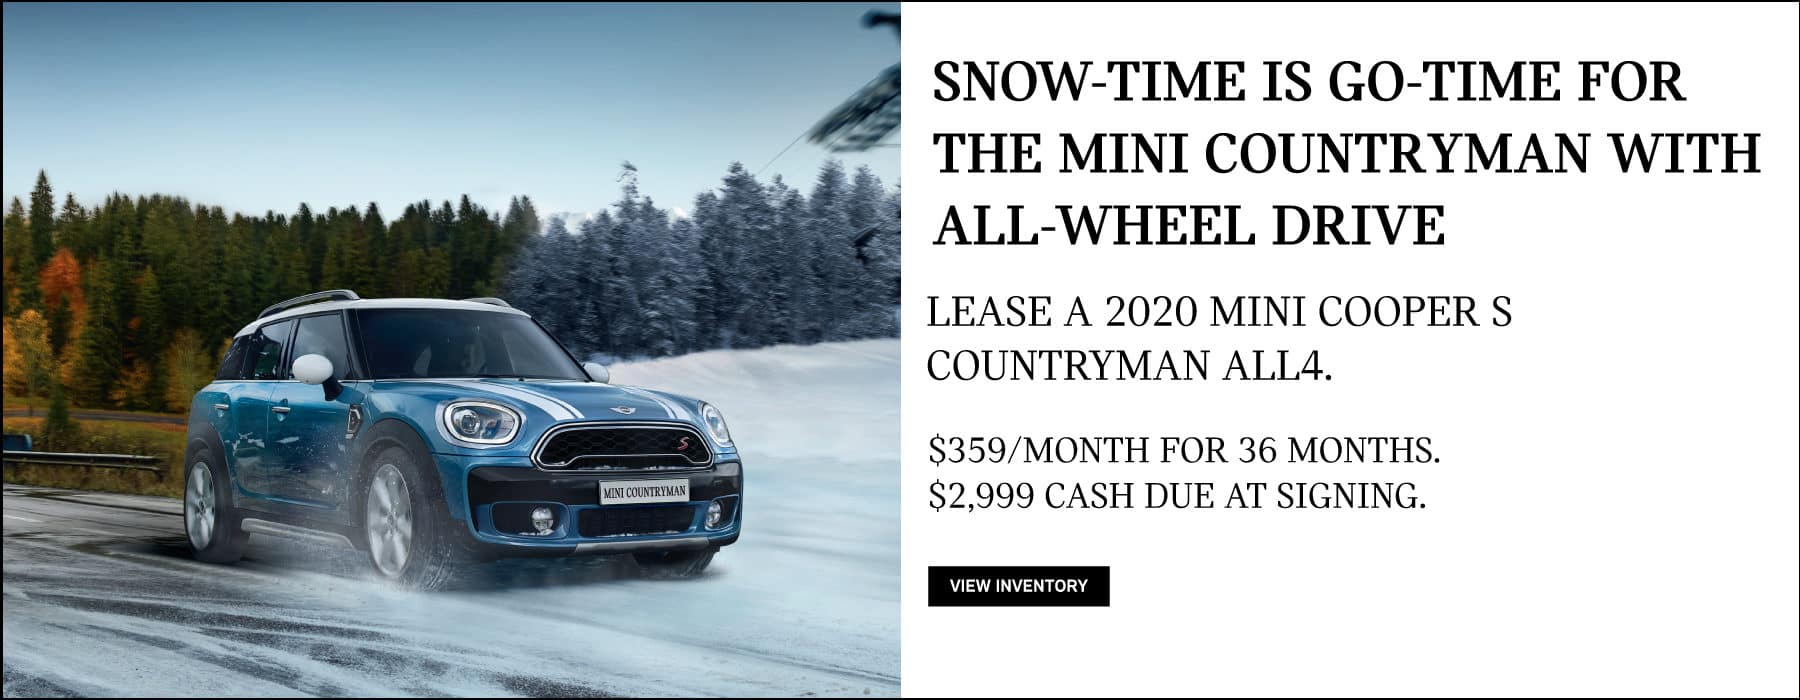 Lease a 2020 MINI Cooper S Countryman for $359/mo. View Inventory